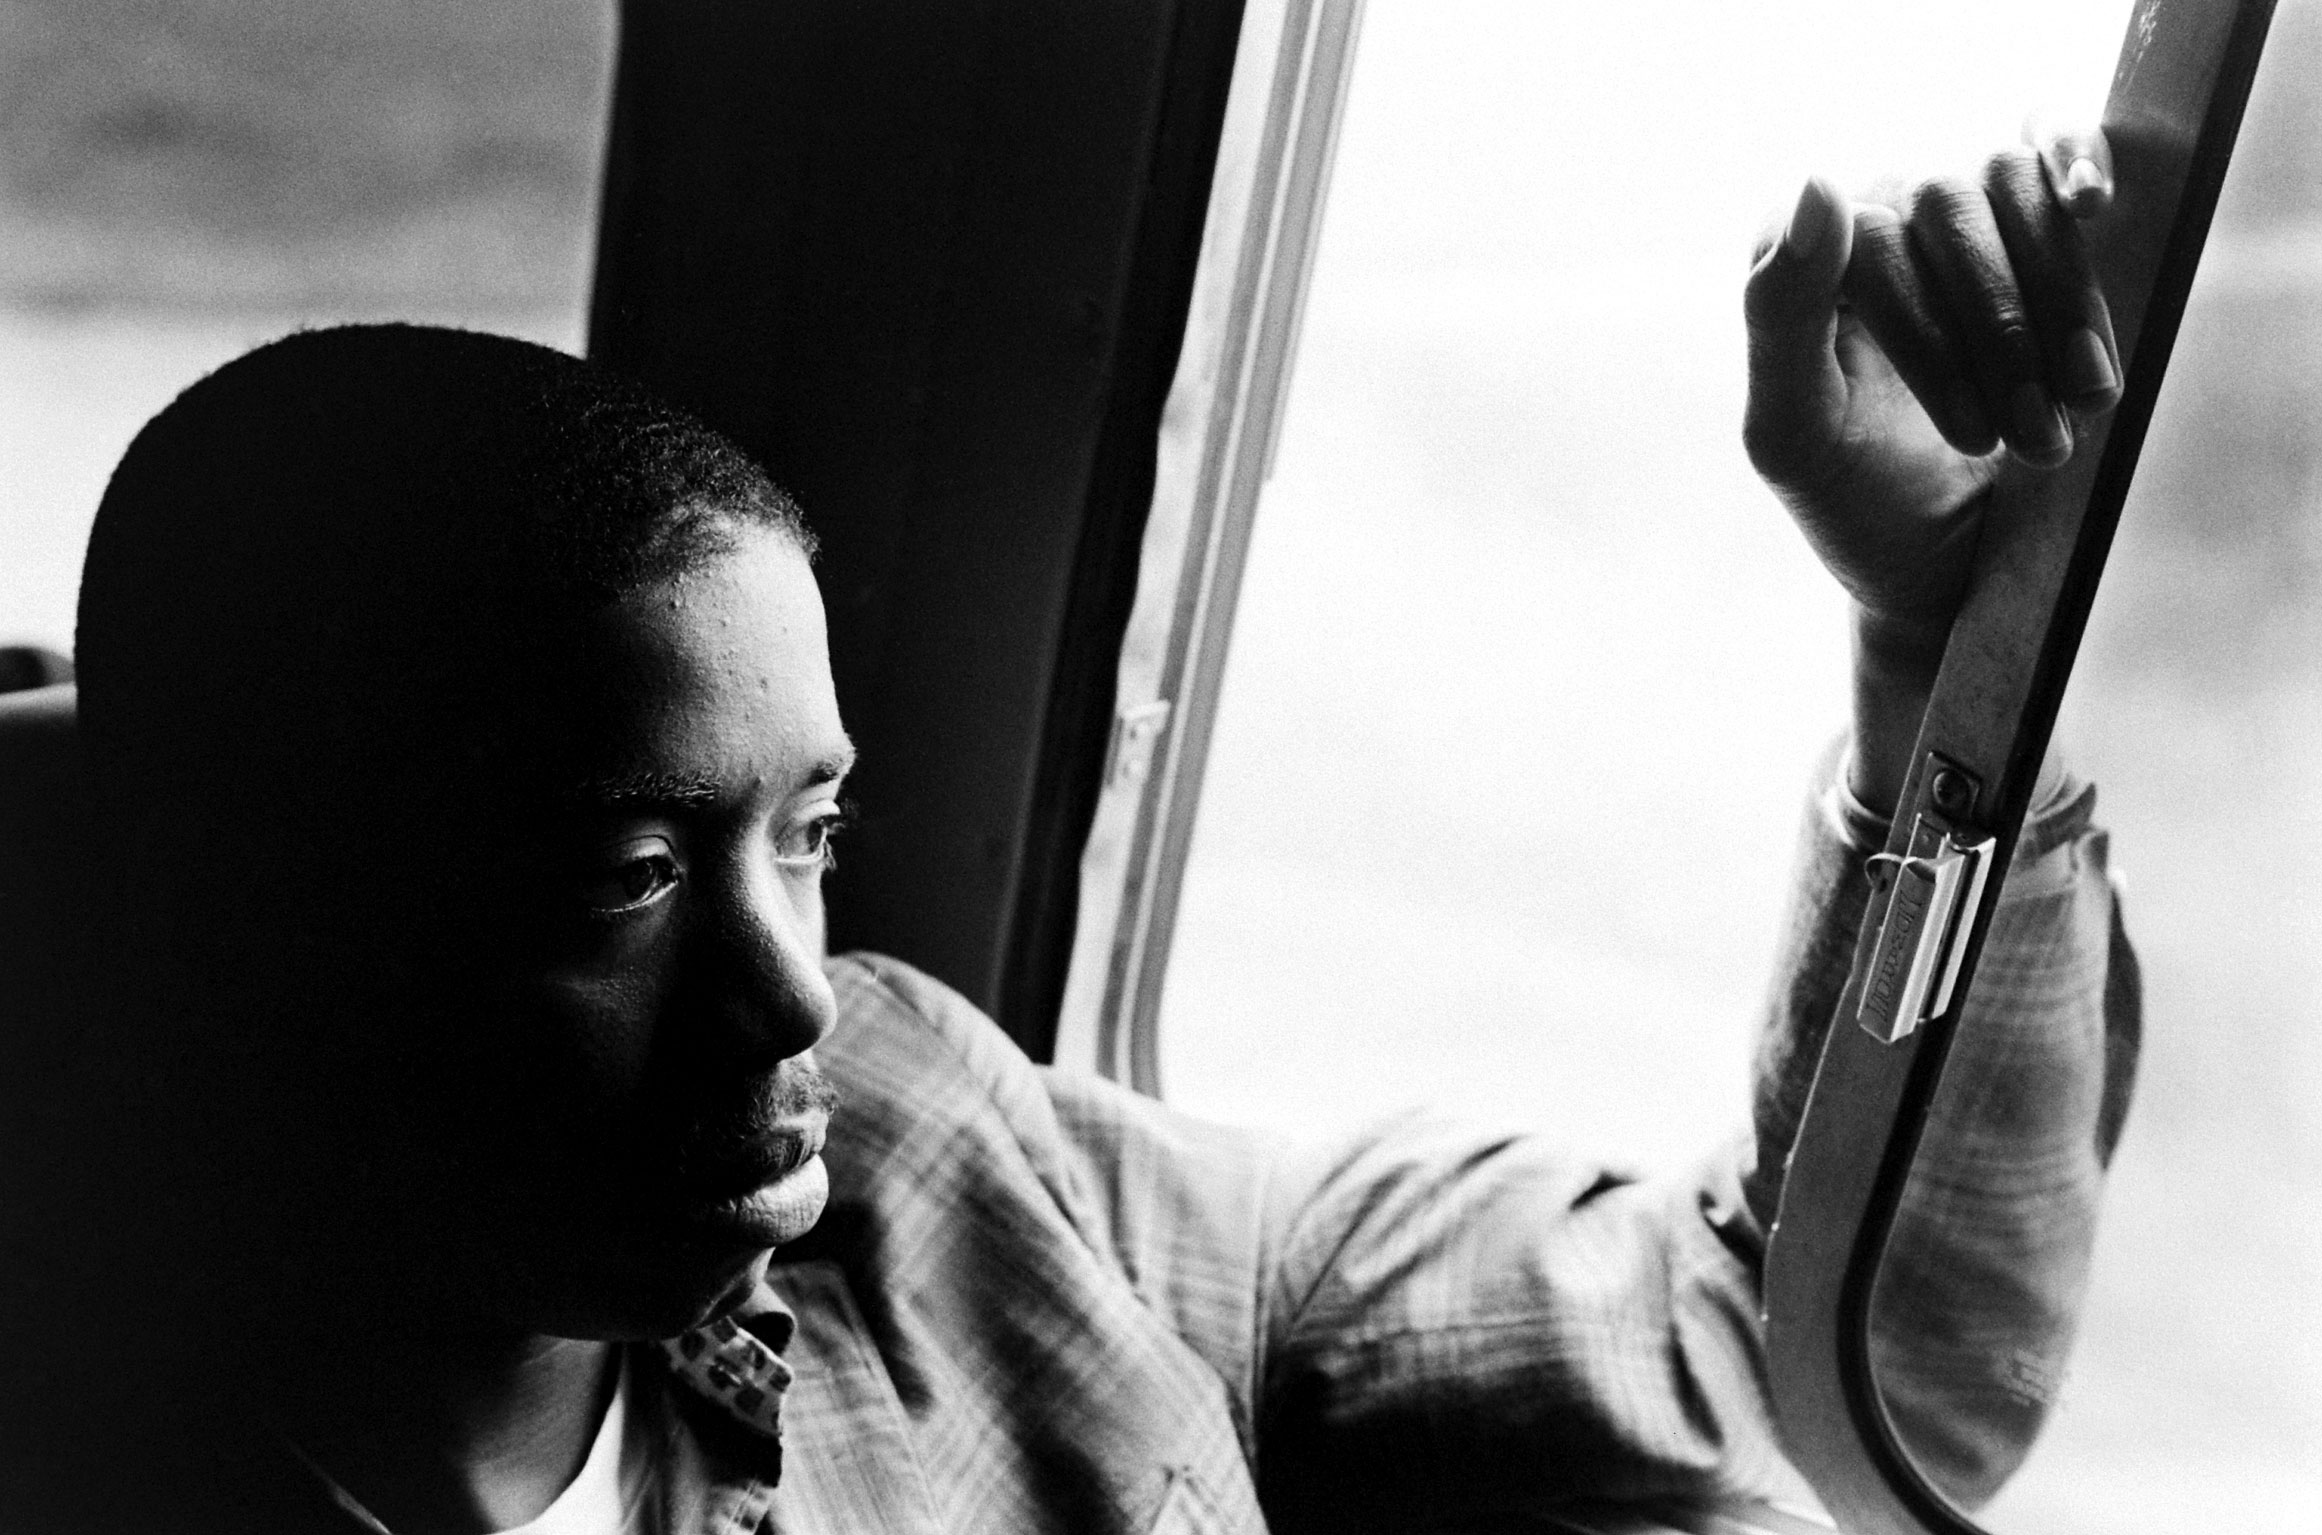 A young freedom rider on a bus in the Deep South.